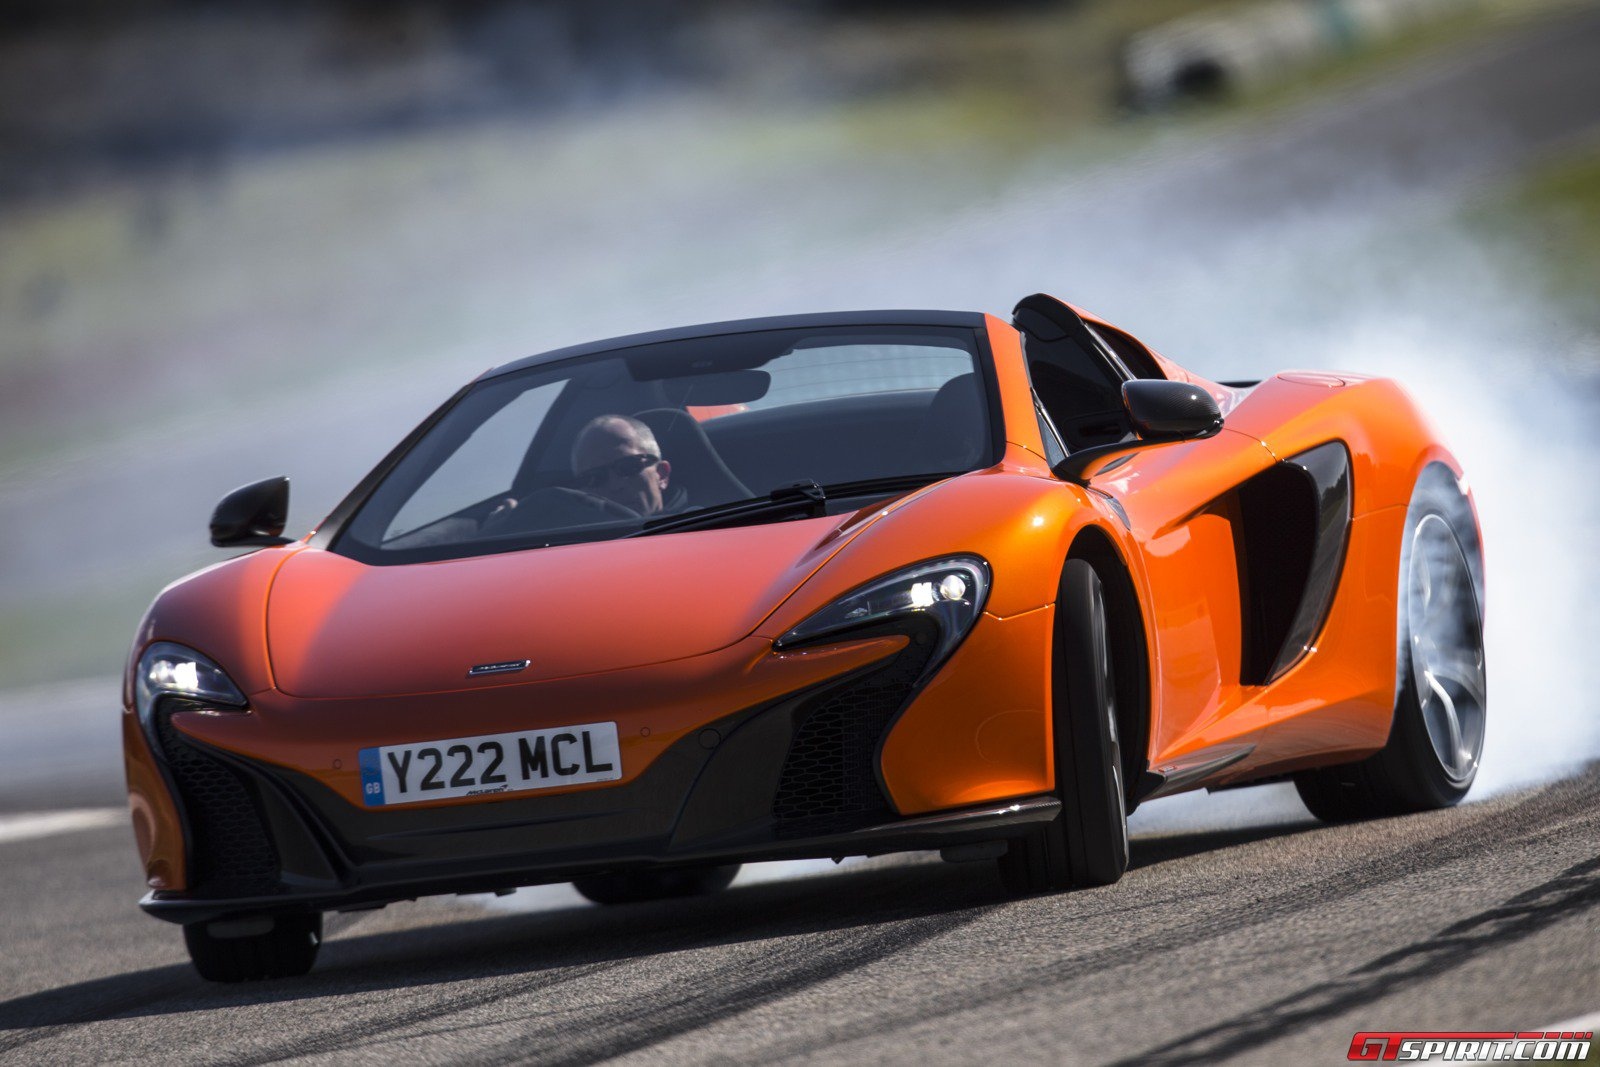 All McLaren Road Cars to be Hybrid in 10 Years - GTspirit